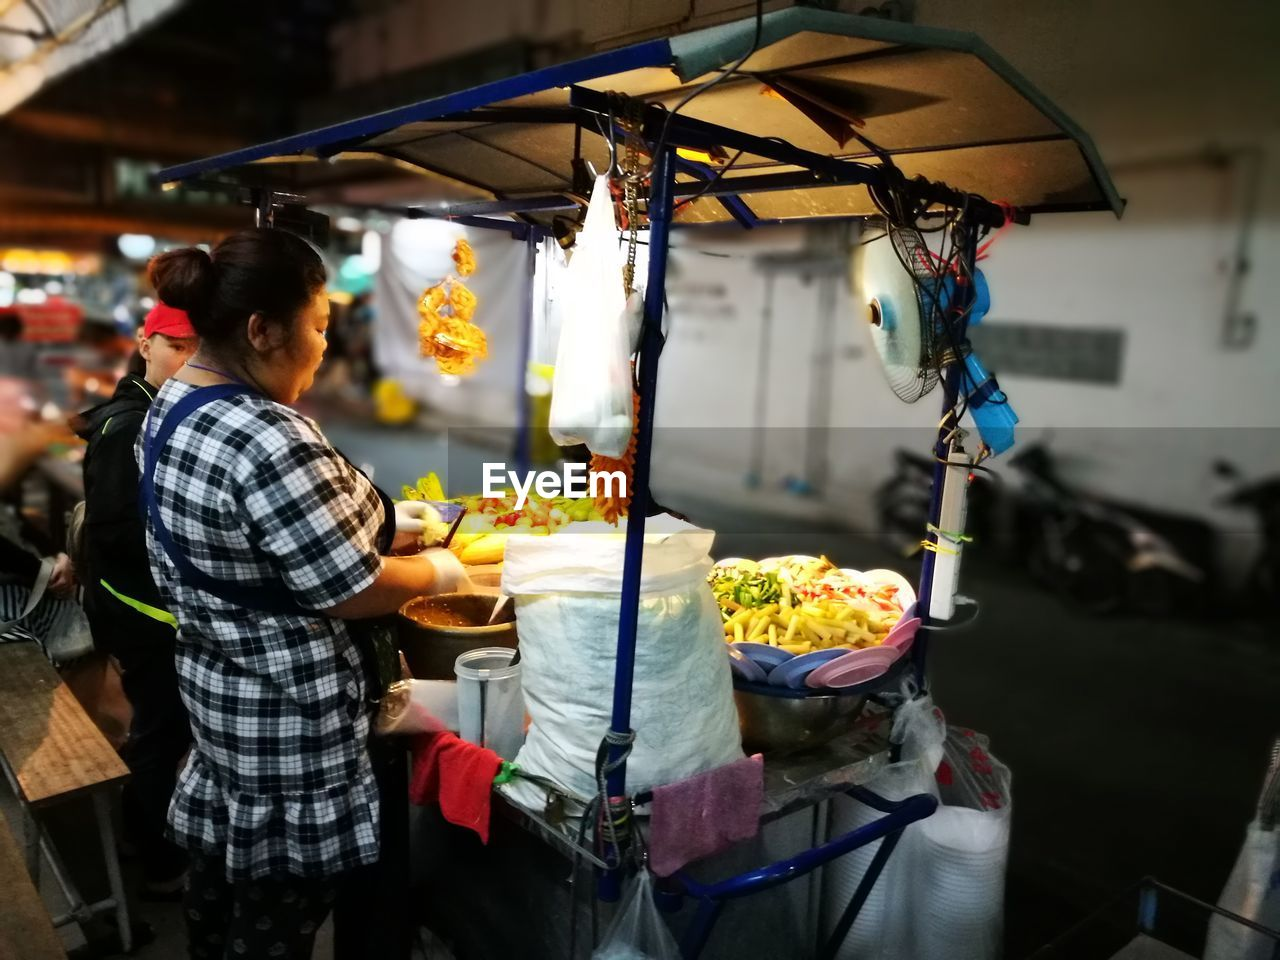 real people, food, food and drink, small business, market, market stall, freshness, retail, men, preparation, occupation, standing, healthy eating, one person, commercial kitchen, outdoors, night, ready-to-eat, people